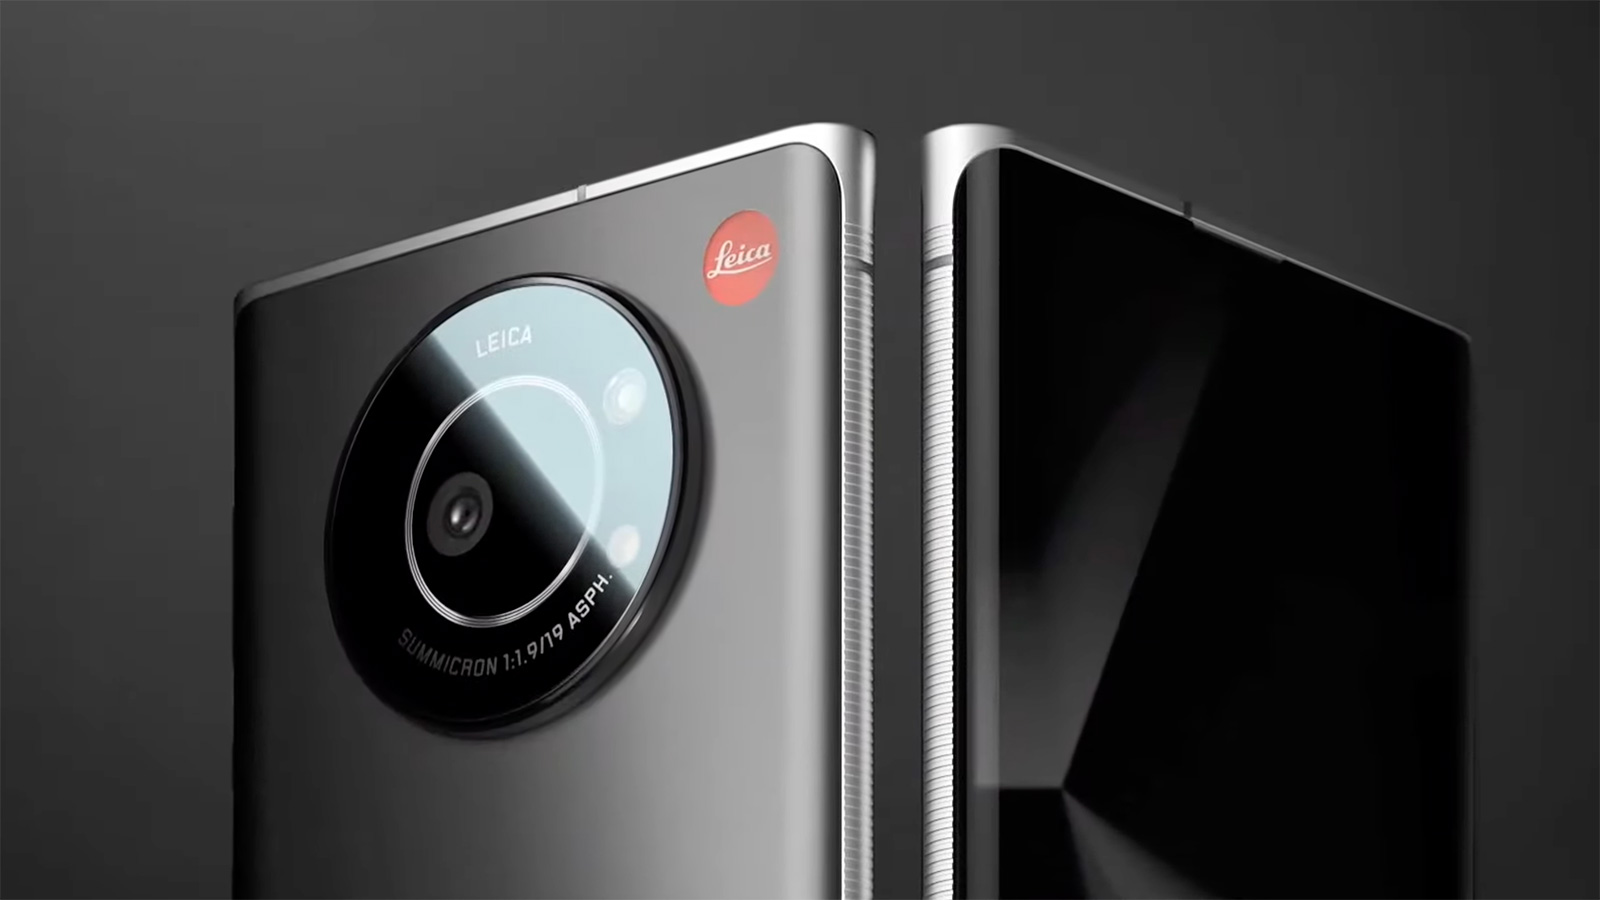 Leitz Phone 1 by Lecia